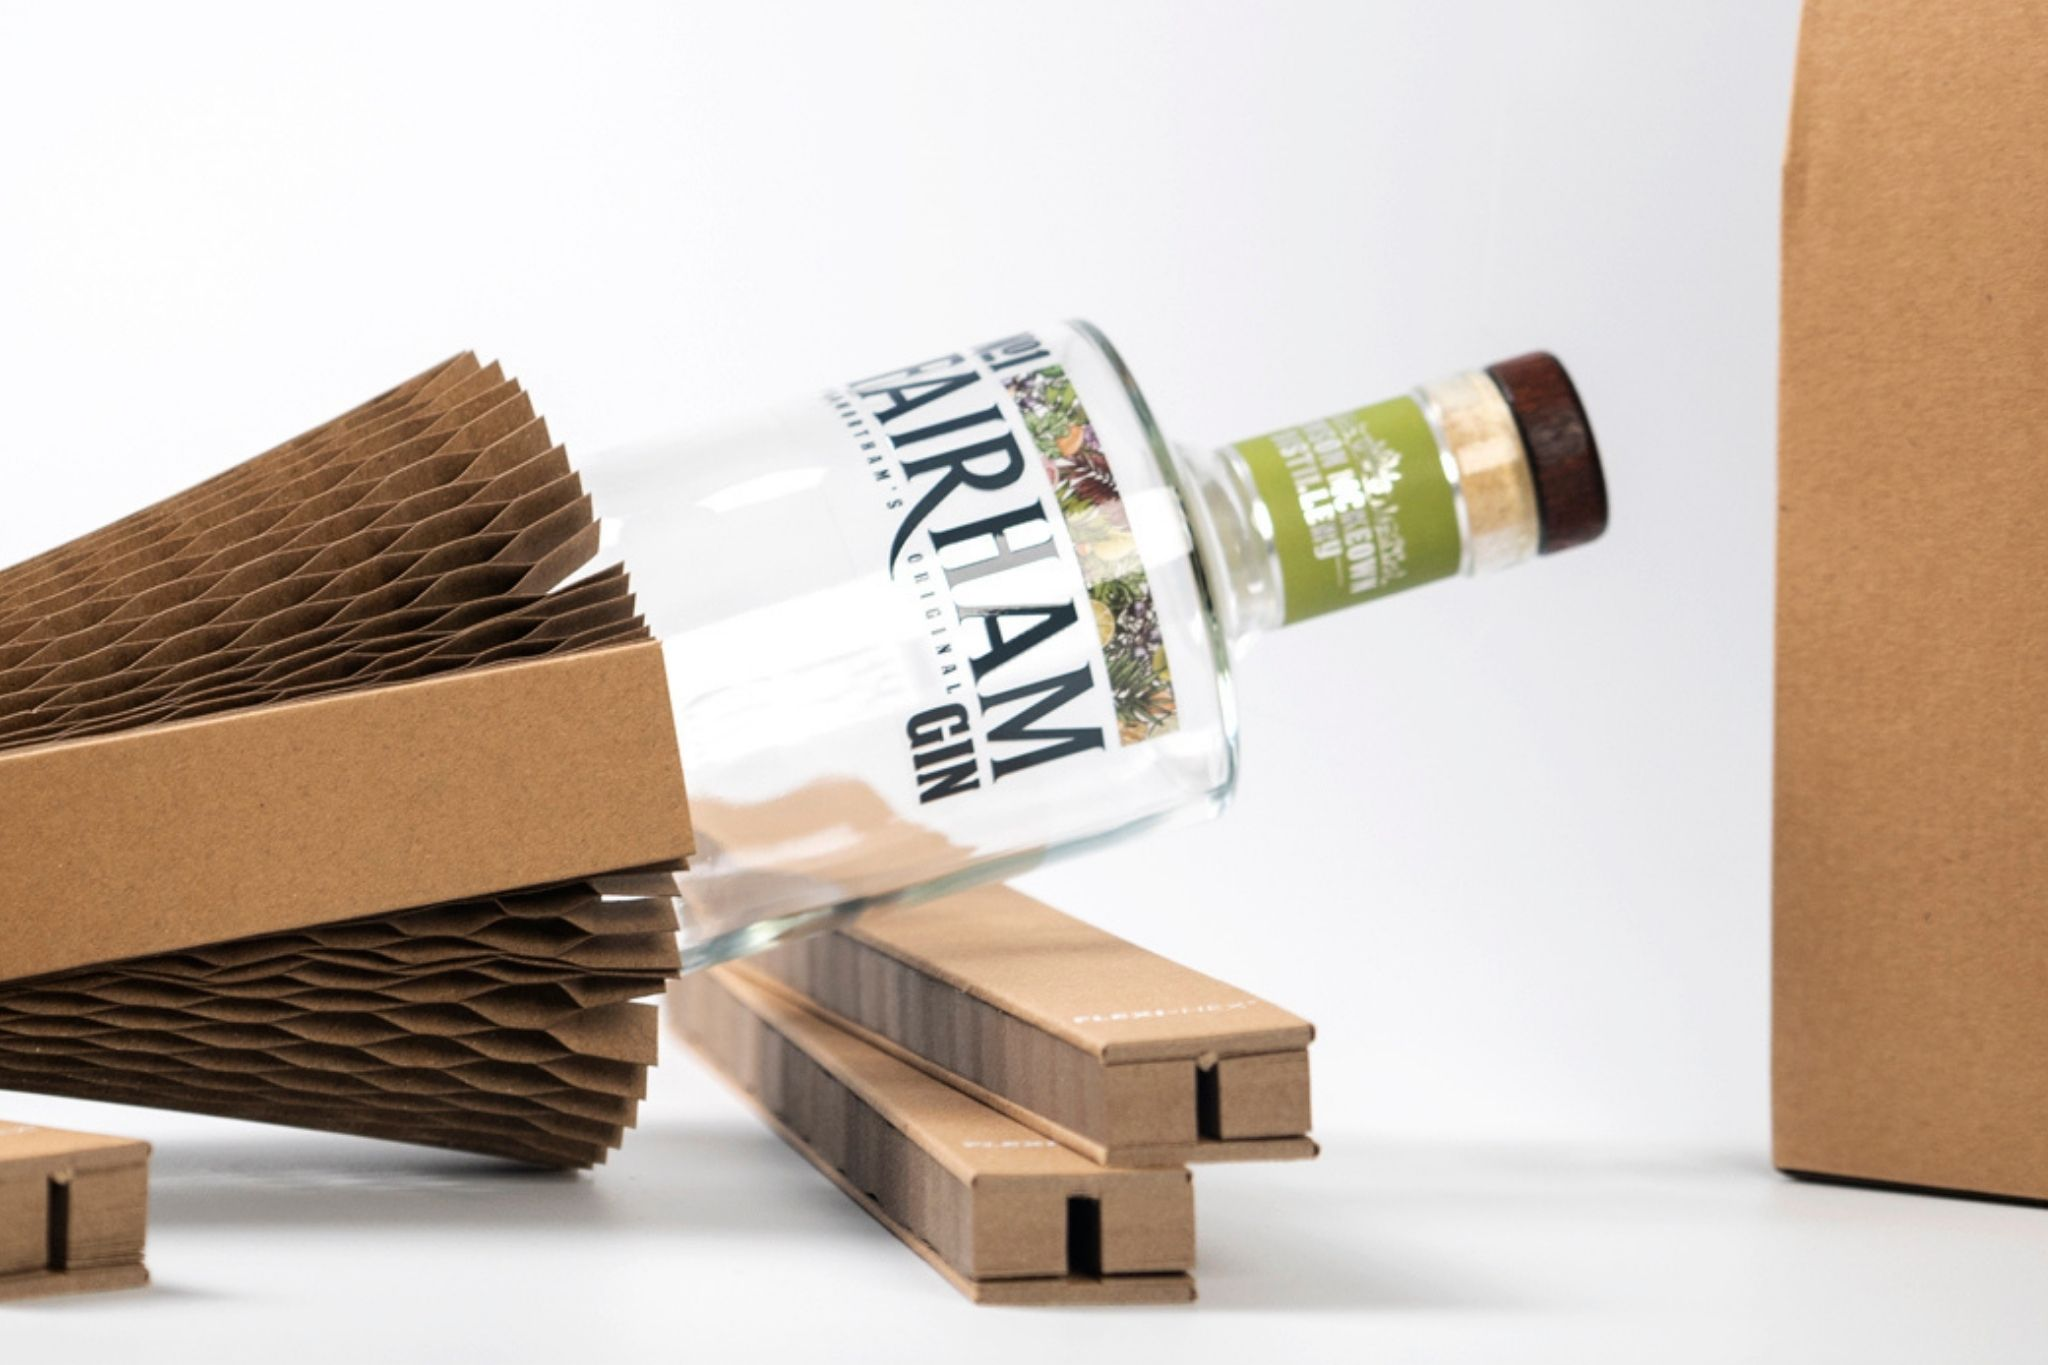 100% plastic free packaging using within craft gin distilling